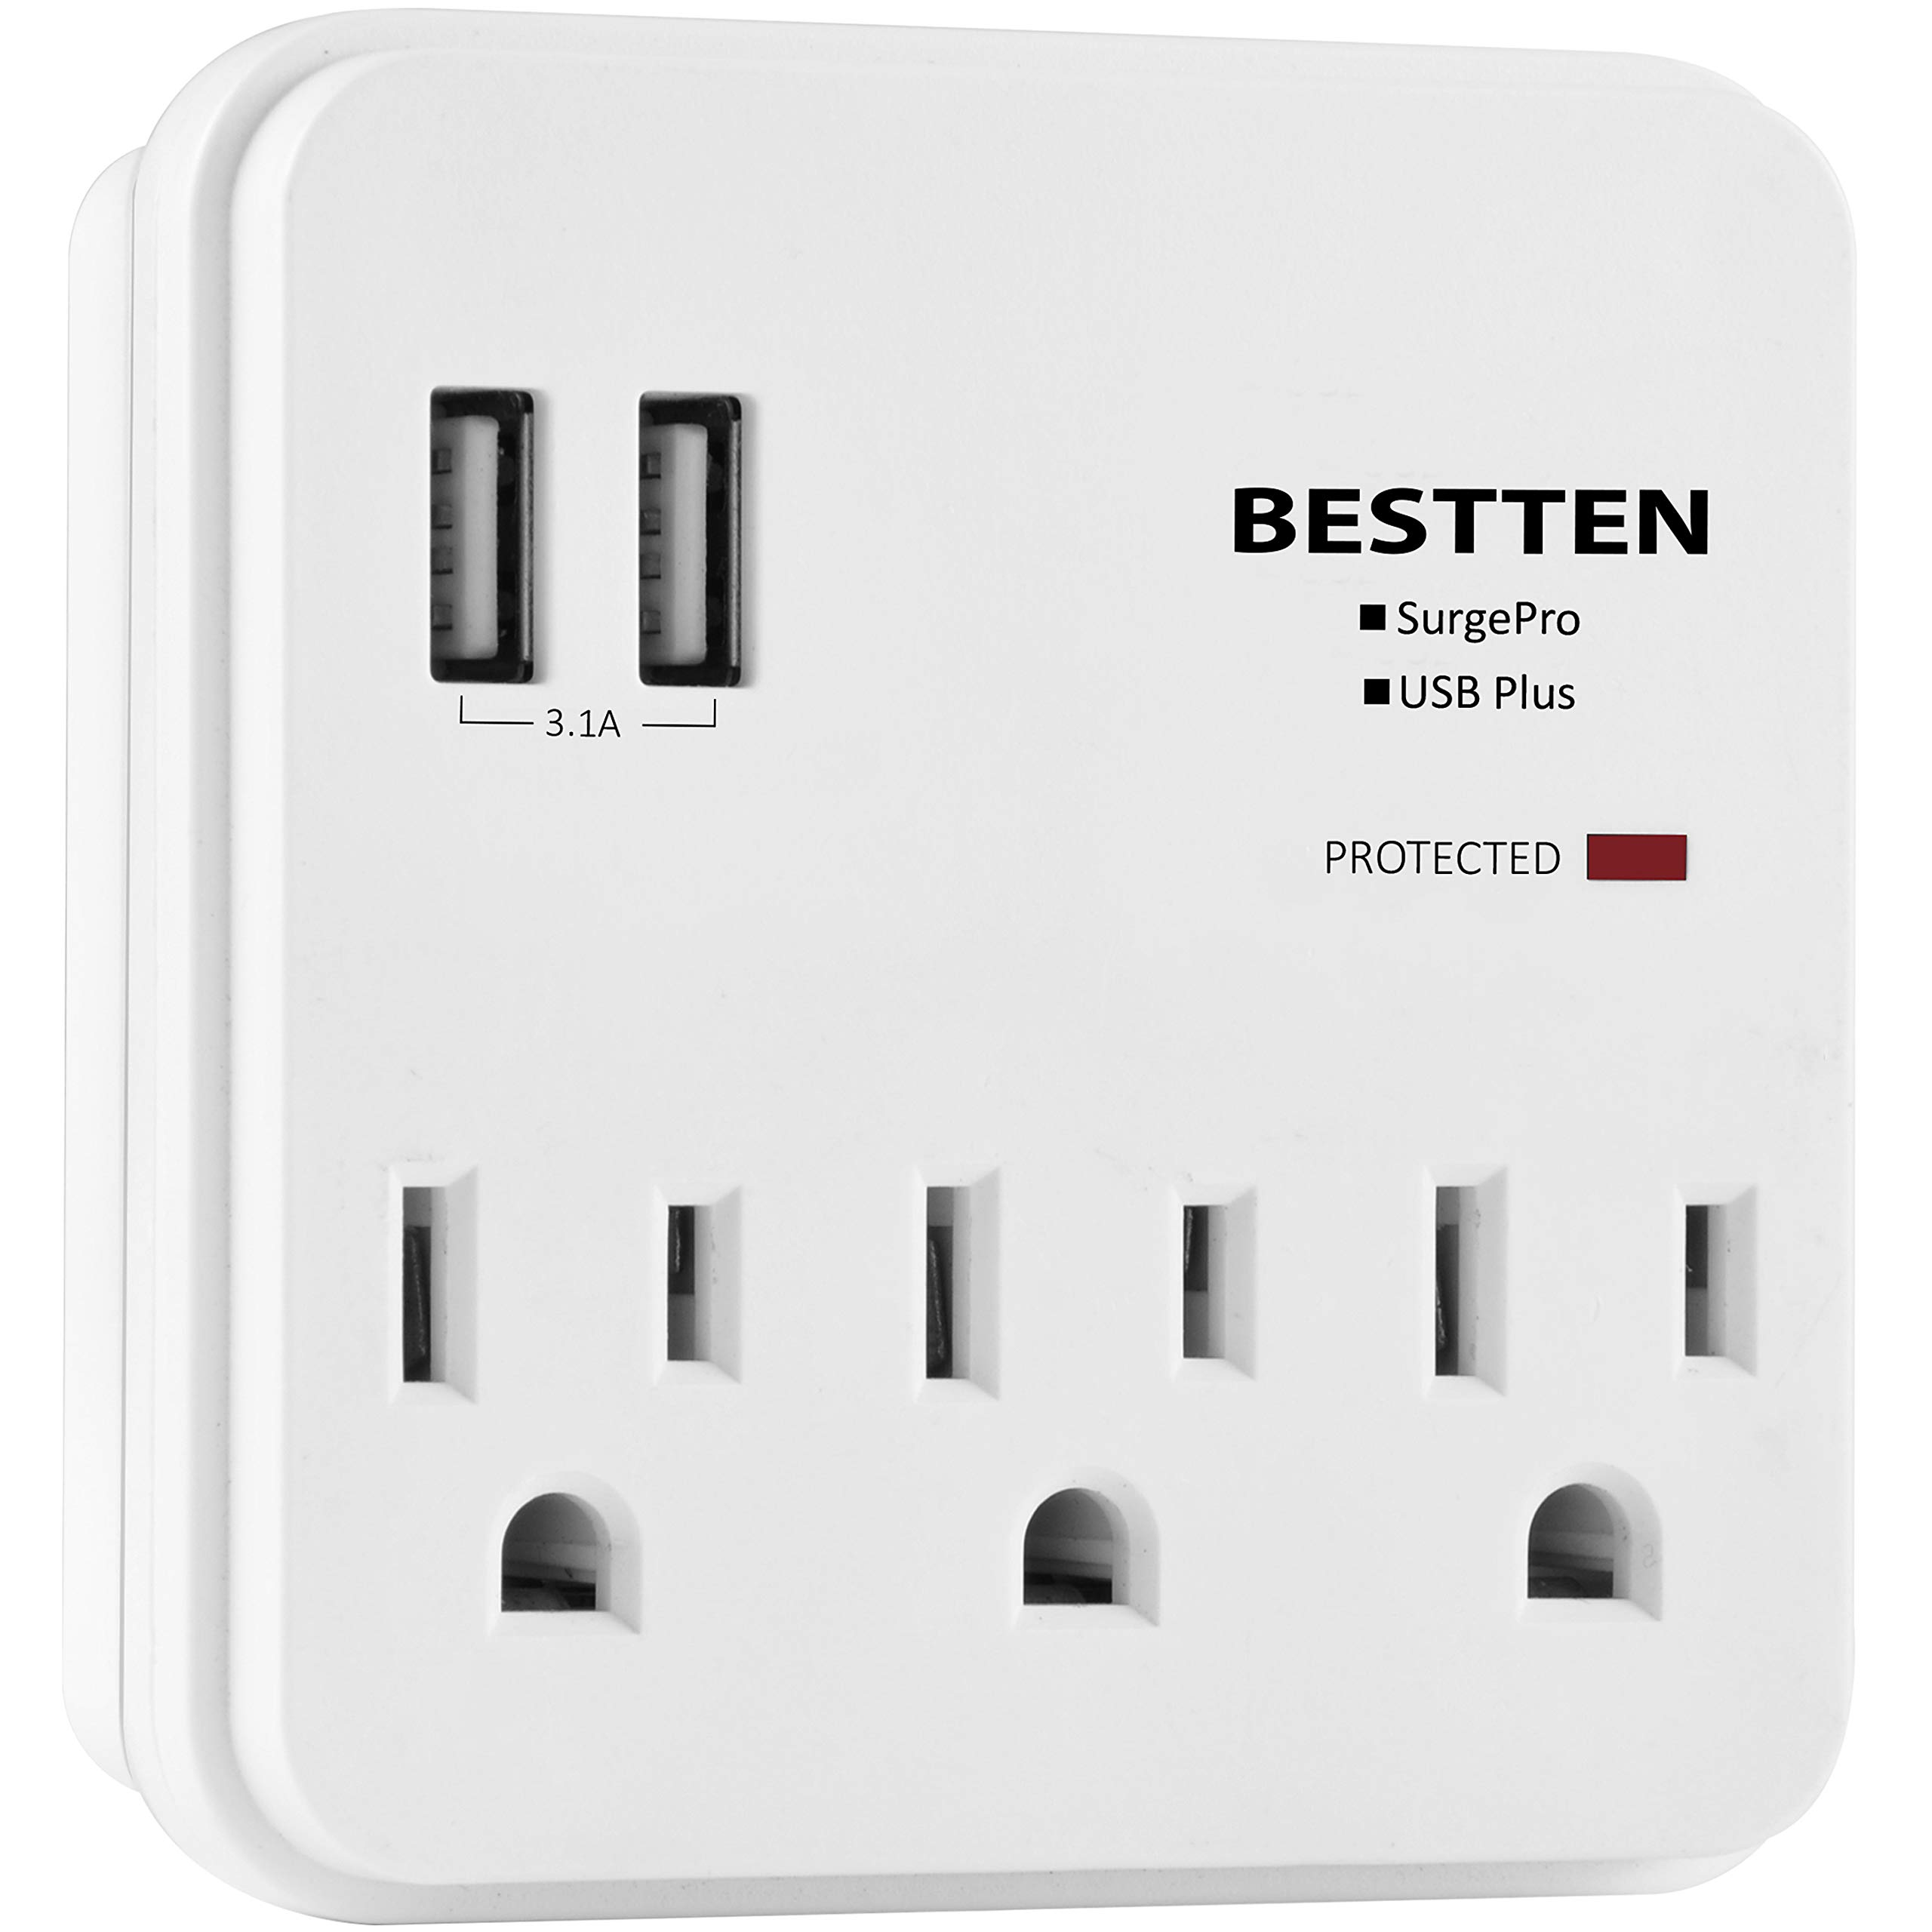 BESTTEN USB Wall Tap Surge Protector, 2 USB Charging Ports (2.4A/Port, 3.1A Total) and 3 Electrical Outlets (15A/125V/1875W), Multiple Plug-In Splitter, ETL Certified, White